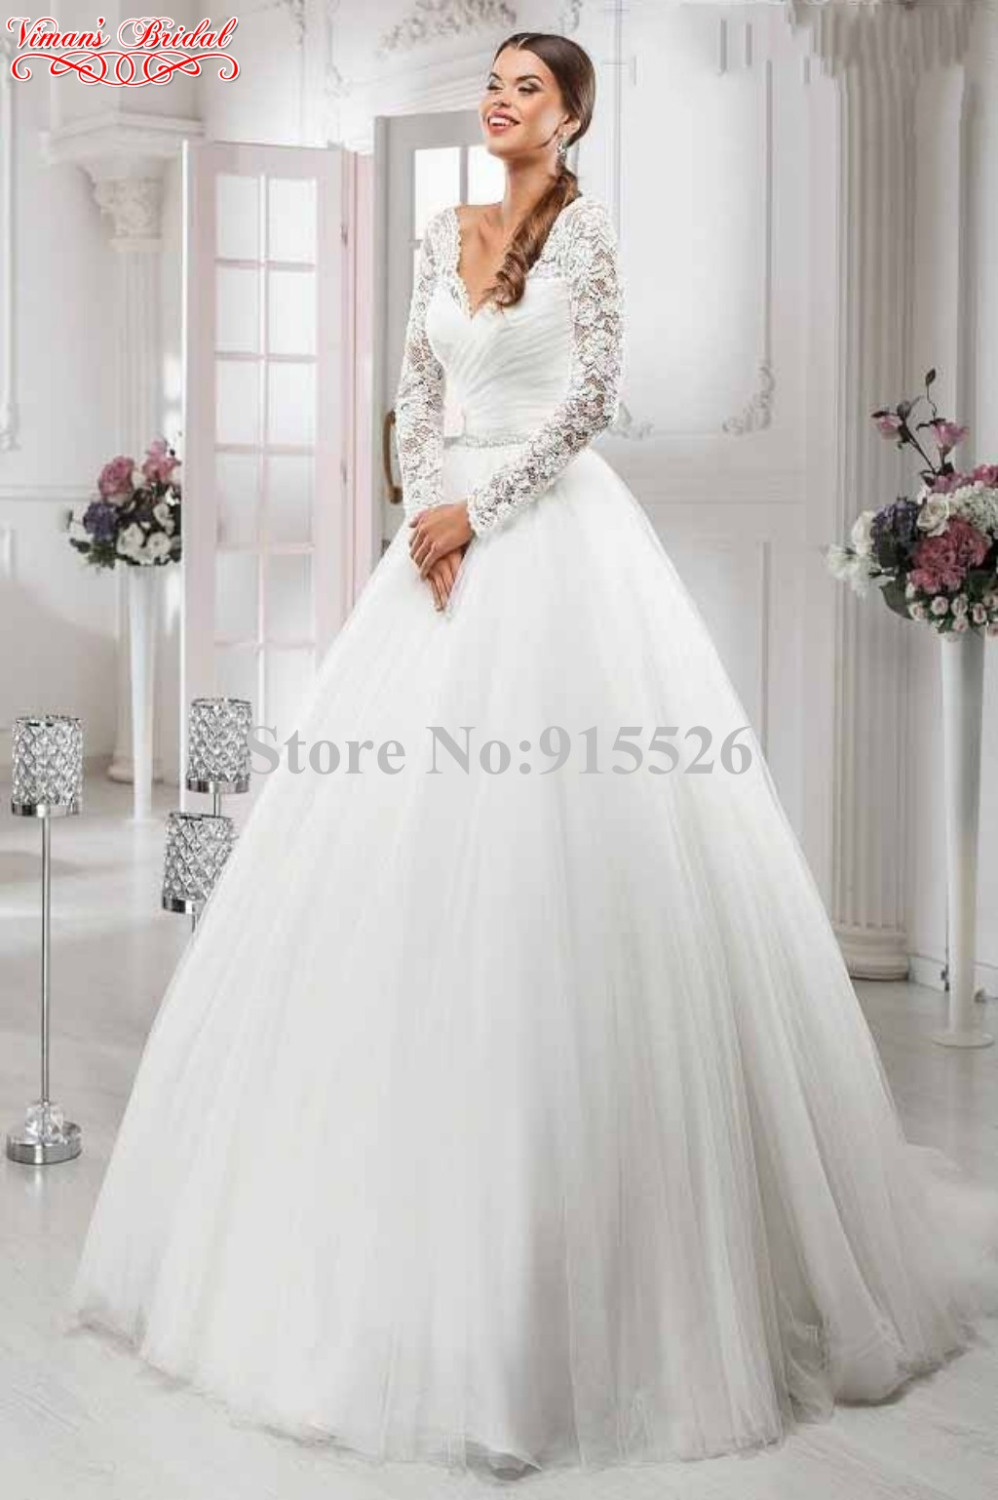 2017 New Design White Bride Dress Liques Lace V Neck Full Long Sleeves Floor Length Ball Gown Gelinlik Free Shipping Ae85 In Wedding Dresses From